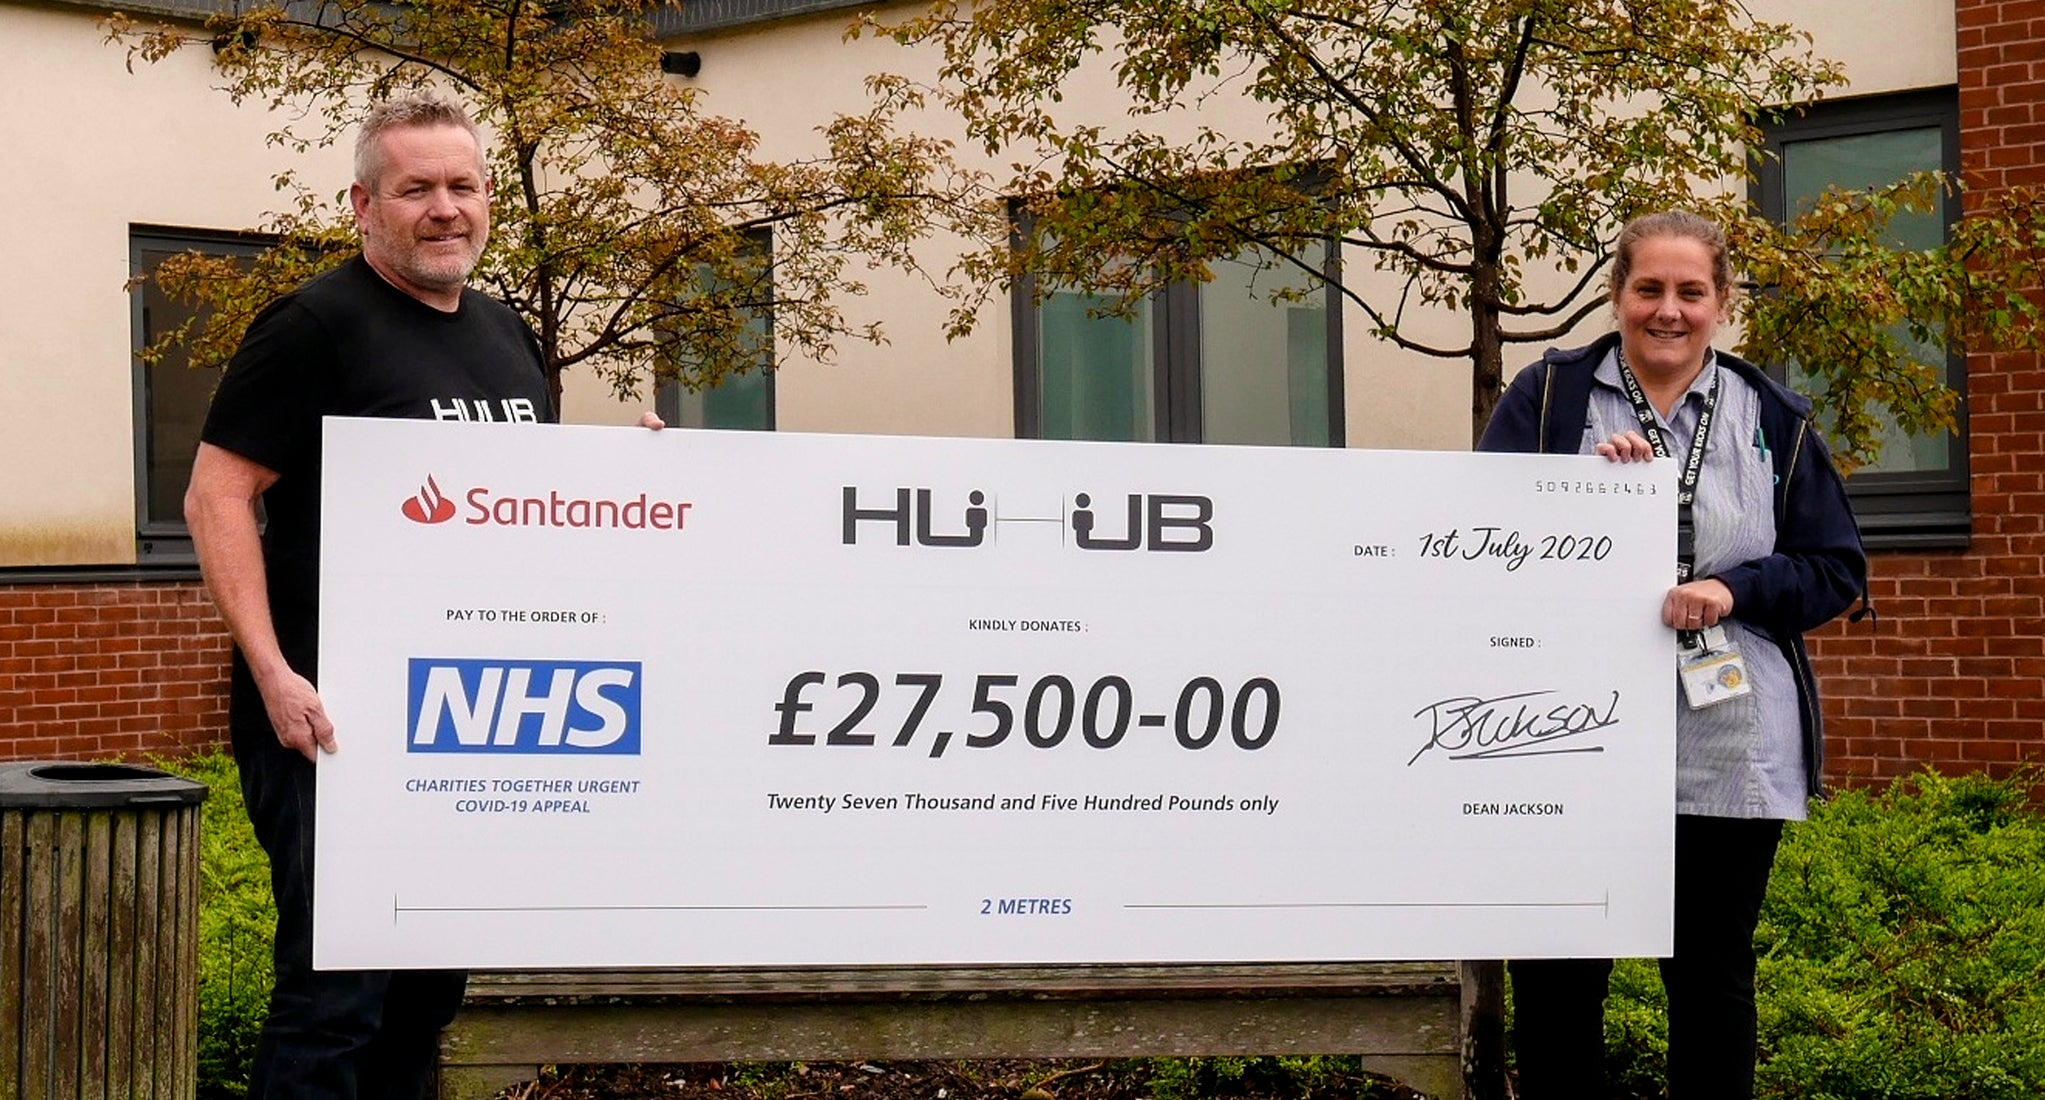 NHS Donation Cheque Handover